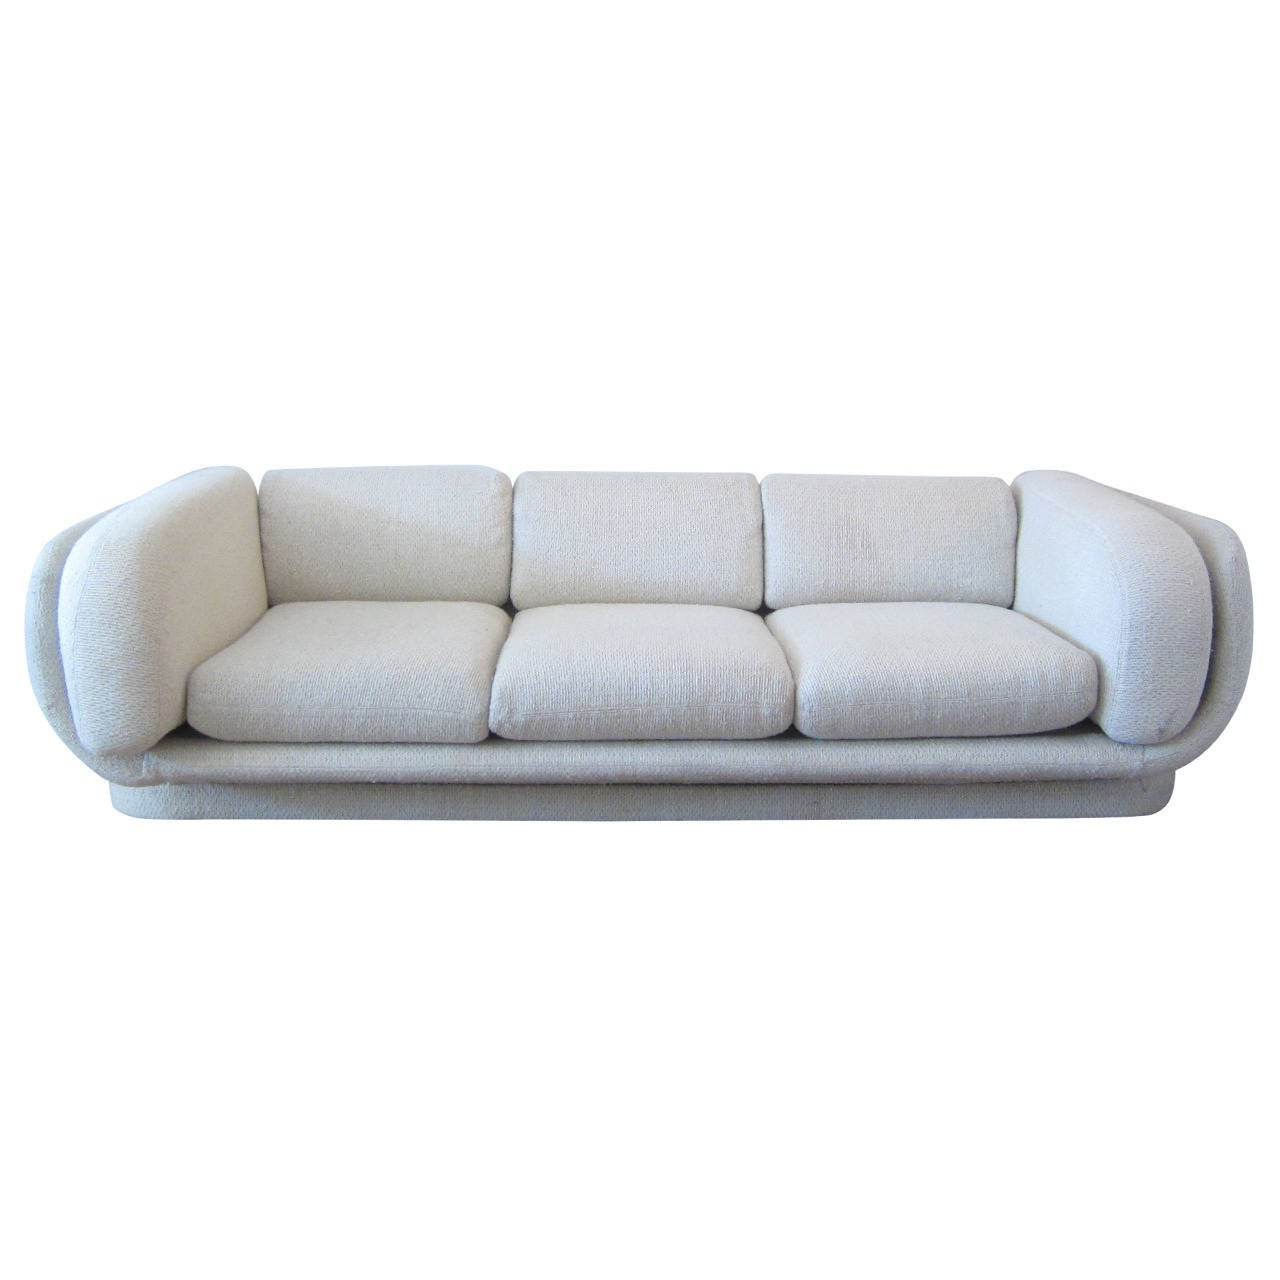 Mid century modern curved sofa with platform base at 1stdibs Curved loveseat sofa